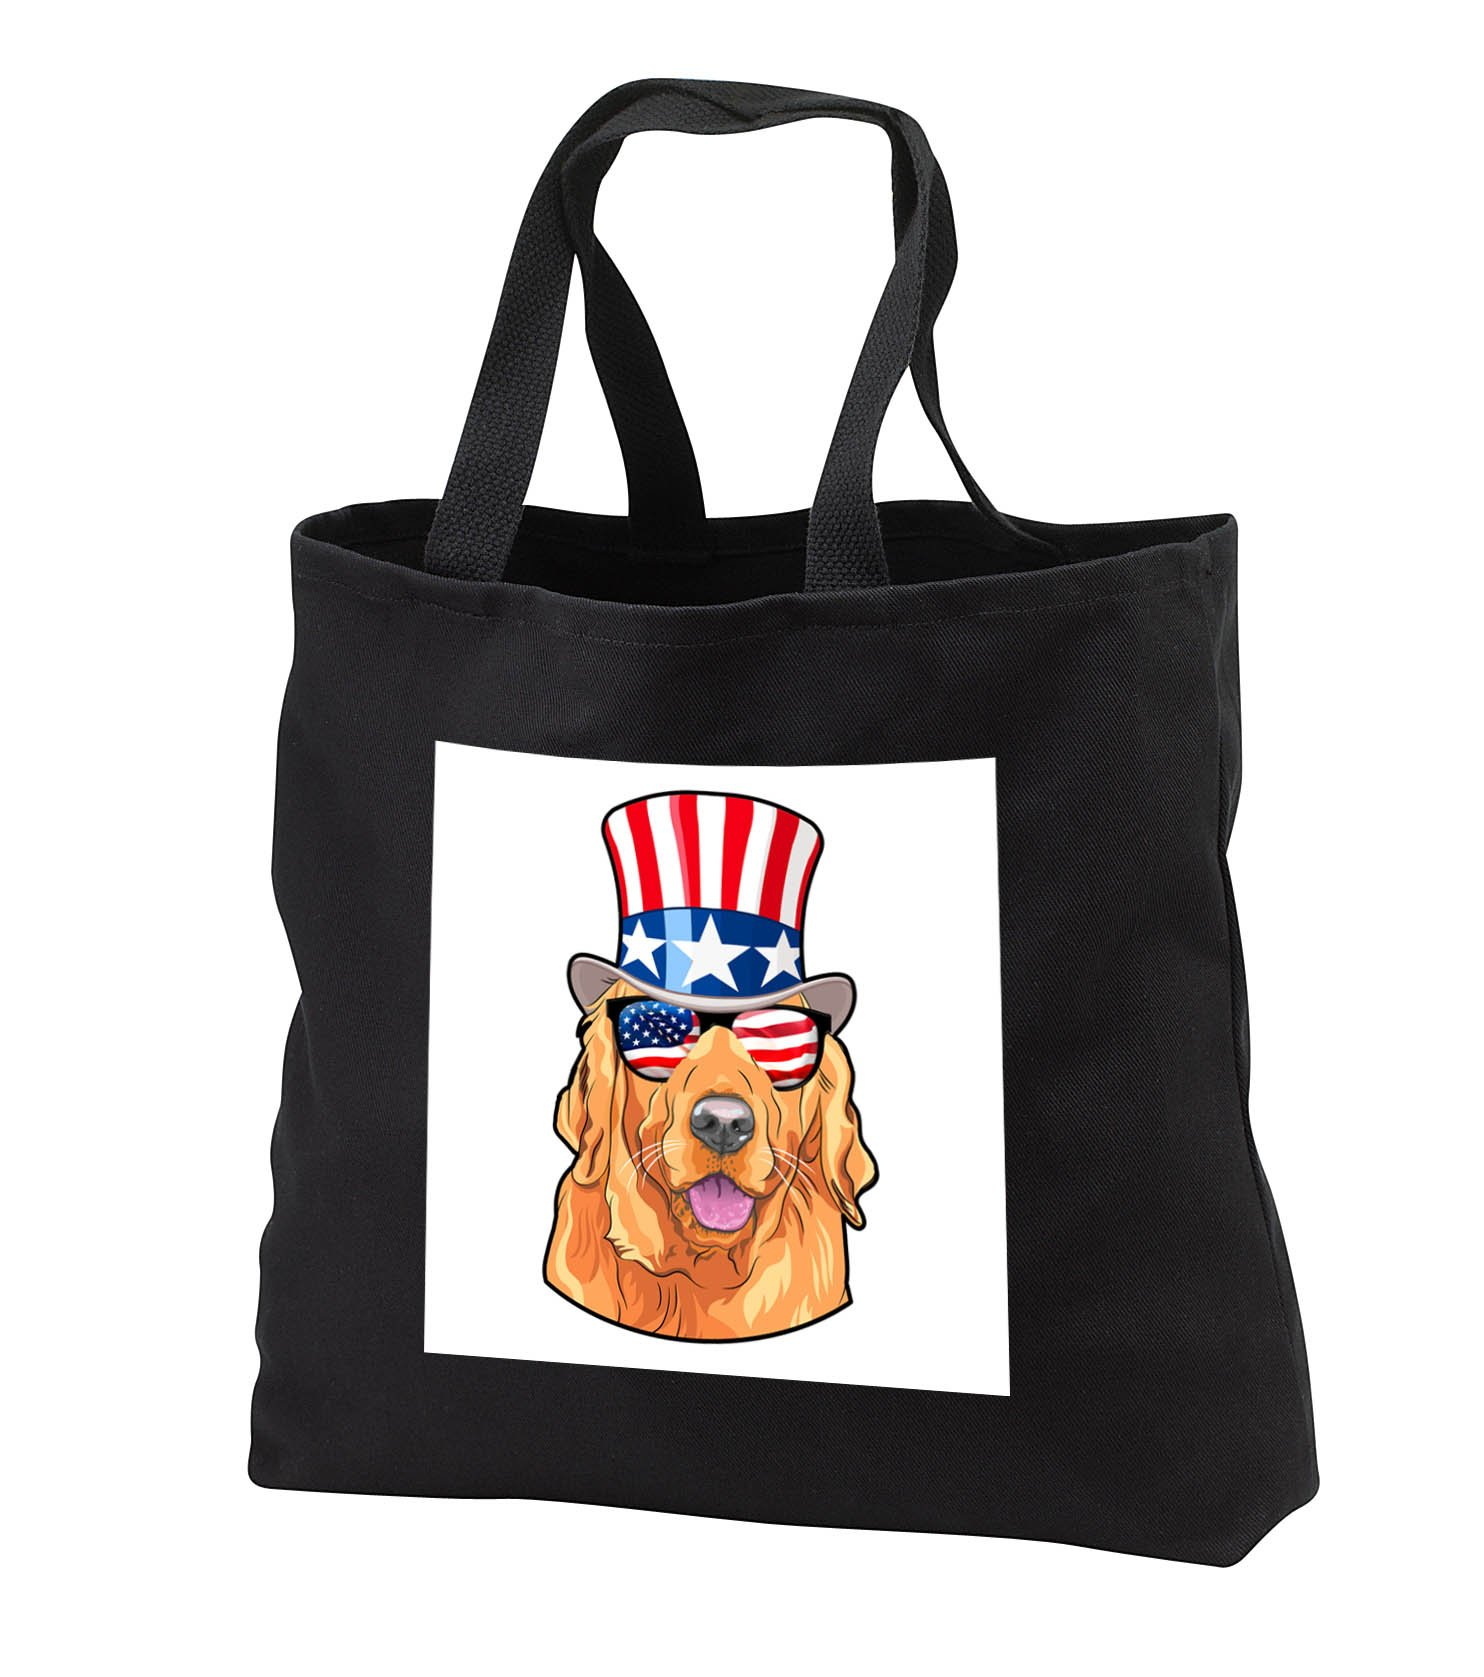 Patriotic American Dogs - Golden Retriever Dog With American Flag Sunglasses and Top hat - Tote Bags - Black Tote Bag JUMBO 20w x 15h x 5d (tb_282714_3)